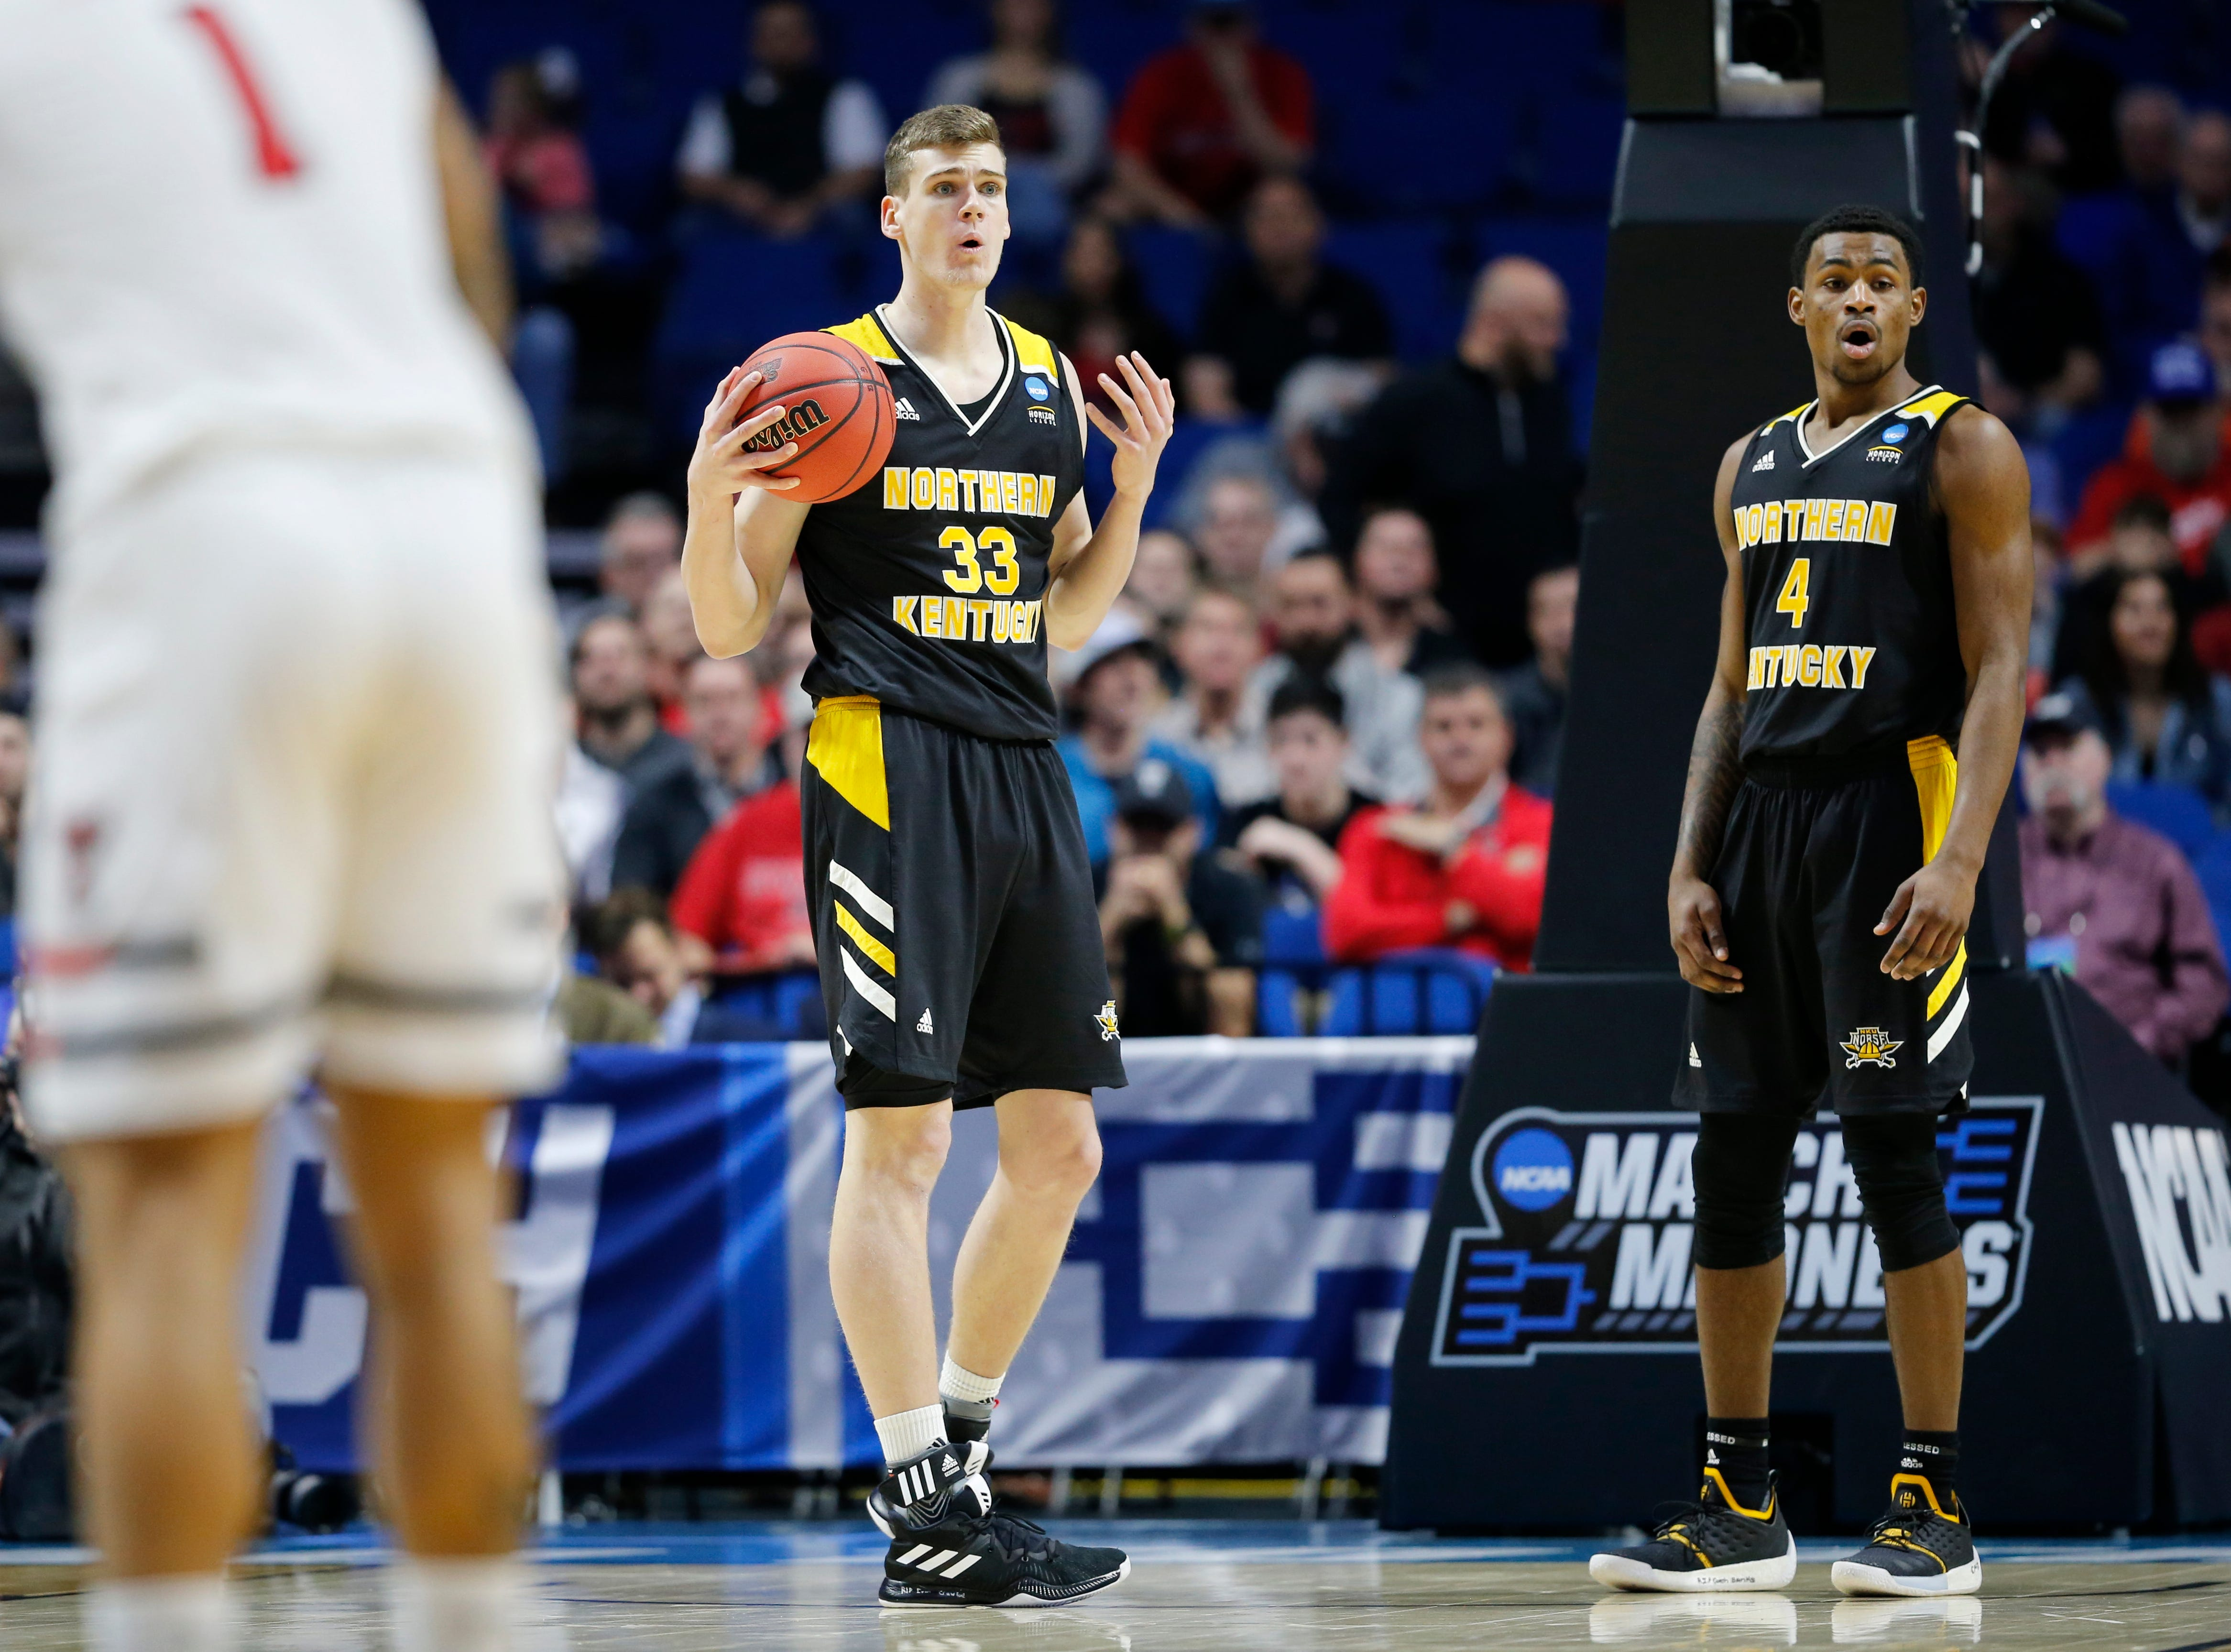 Northern Kentucky Norse center Chris Vogt (33) reacts to a foul in the first half of the NCAA Tournament First Round game between the 14-seeded Northern Kentucky Norse and the 3-seeded Texas Tech Red Raiders the BOK Center in downtown Tulsa on Friday, March 22, 2019. Texas Tech led 30-26 at halftime.